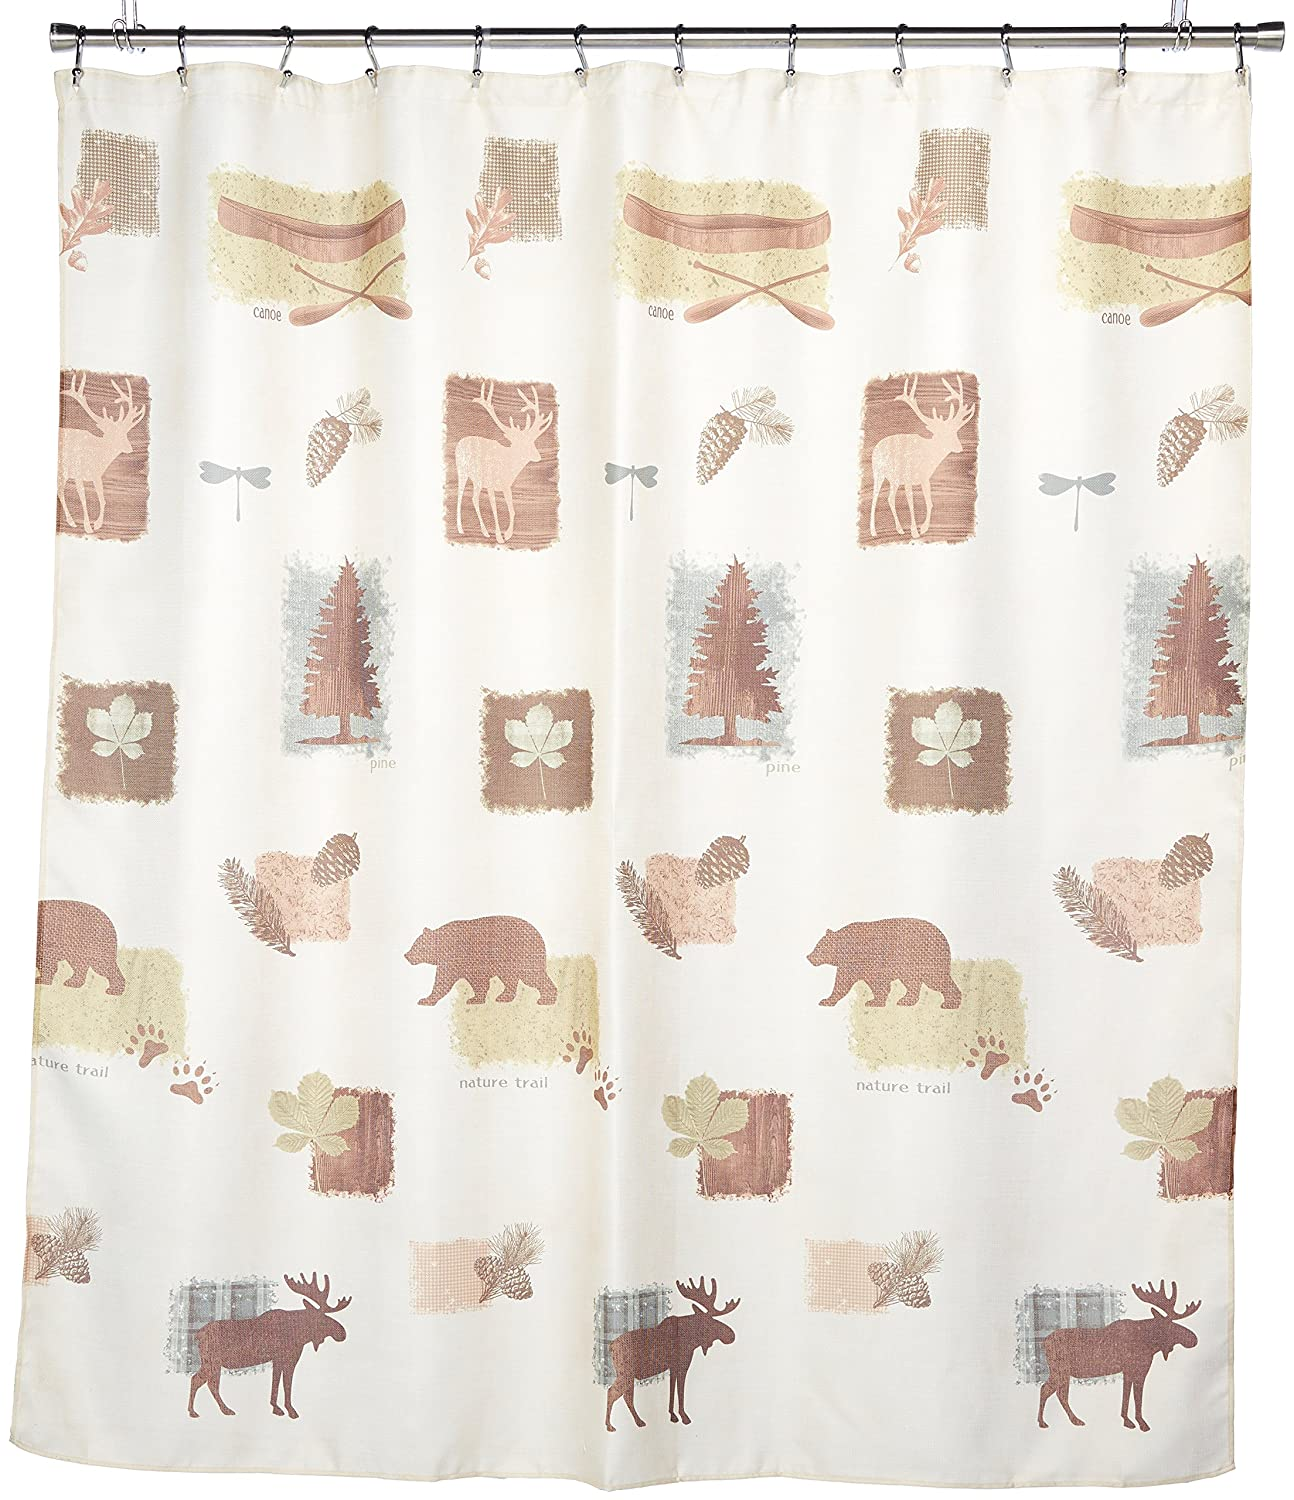 Rustic Bathroom Decor Shower Curtains  from images-na.ssl-images-amazon.com